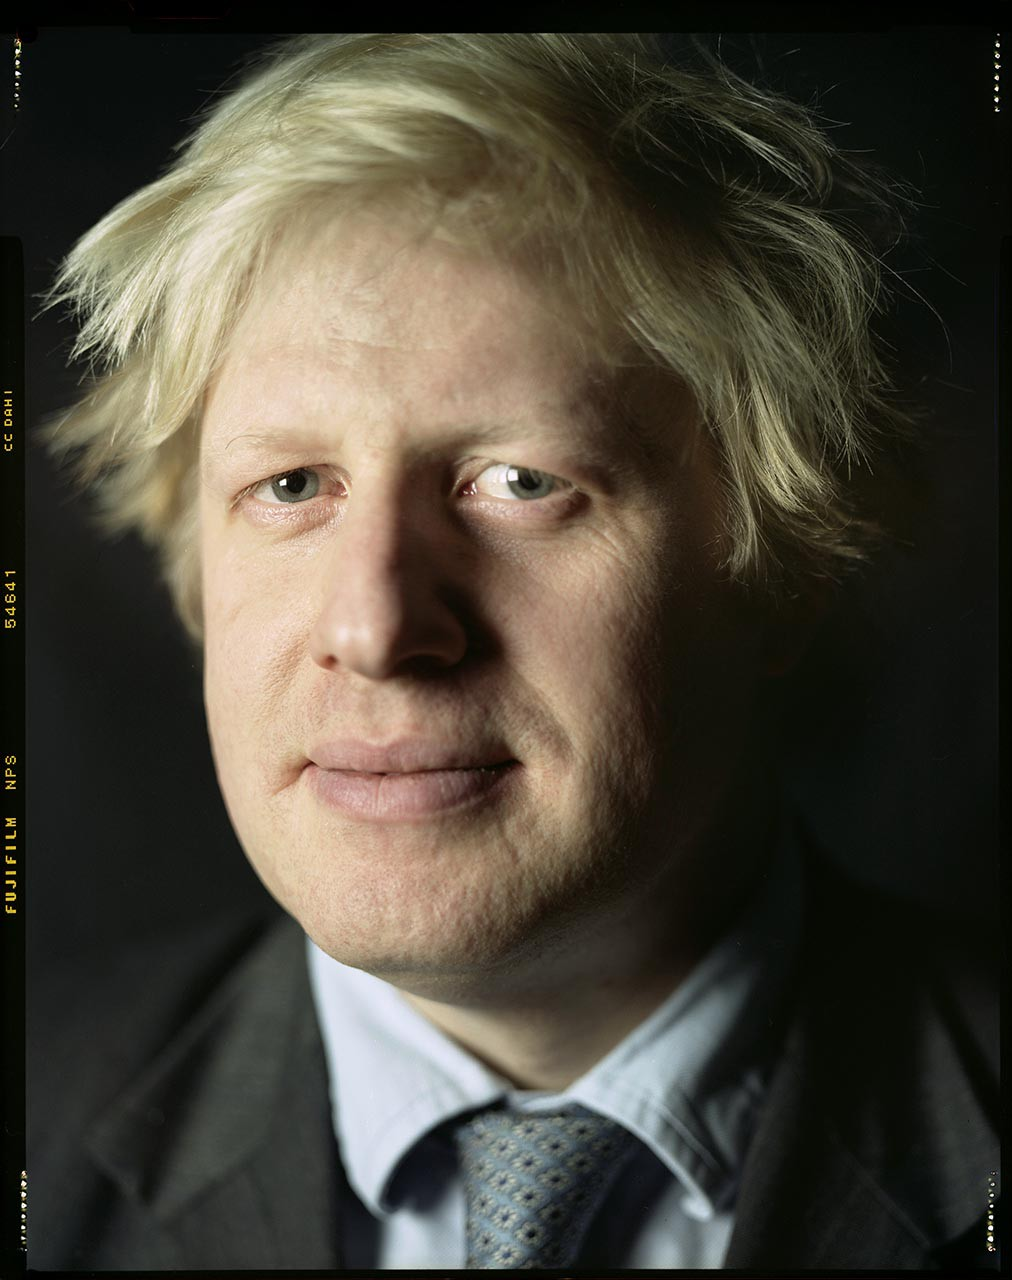 Boris-Book